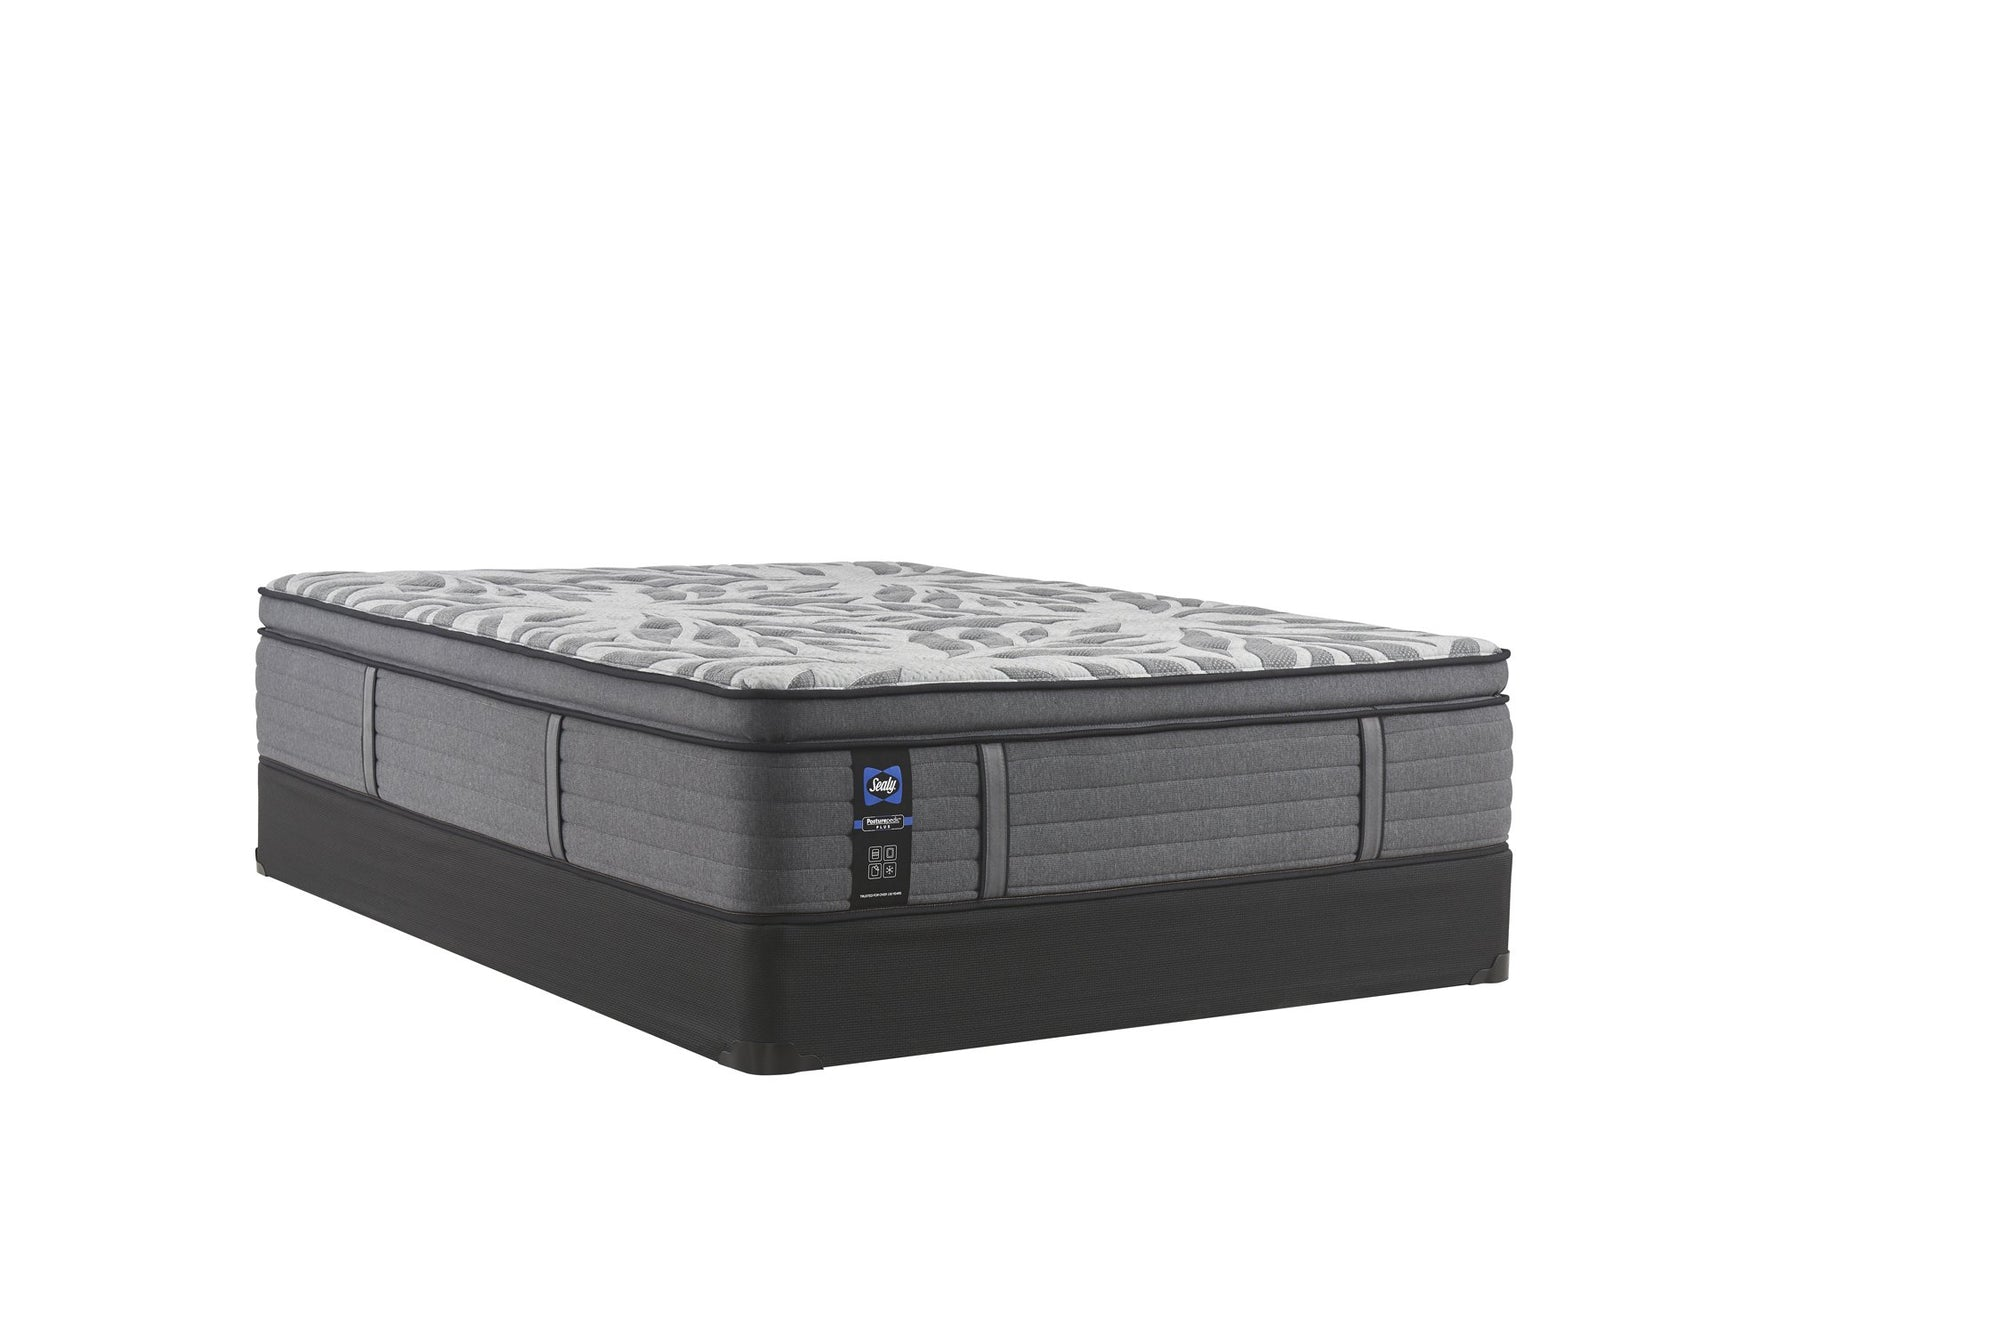 Sealy Posturepedic Plus Determination II Ultra Plush Innerspring Mattress Mattress Sealy